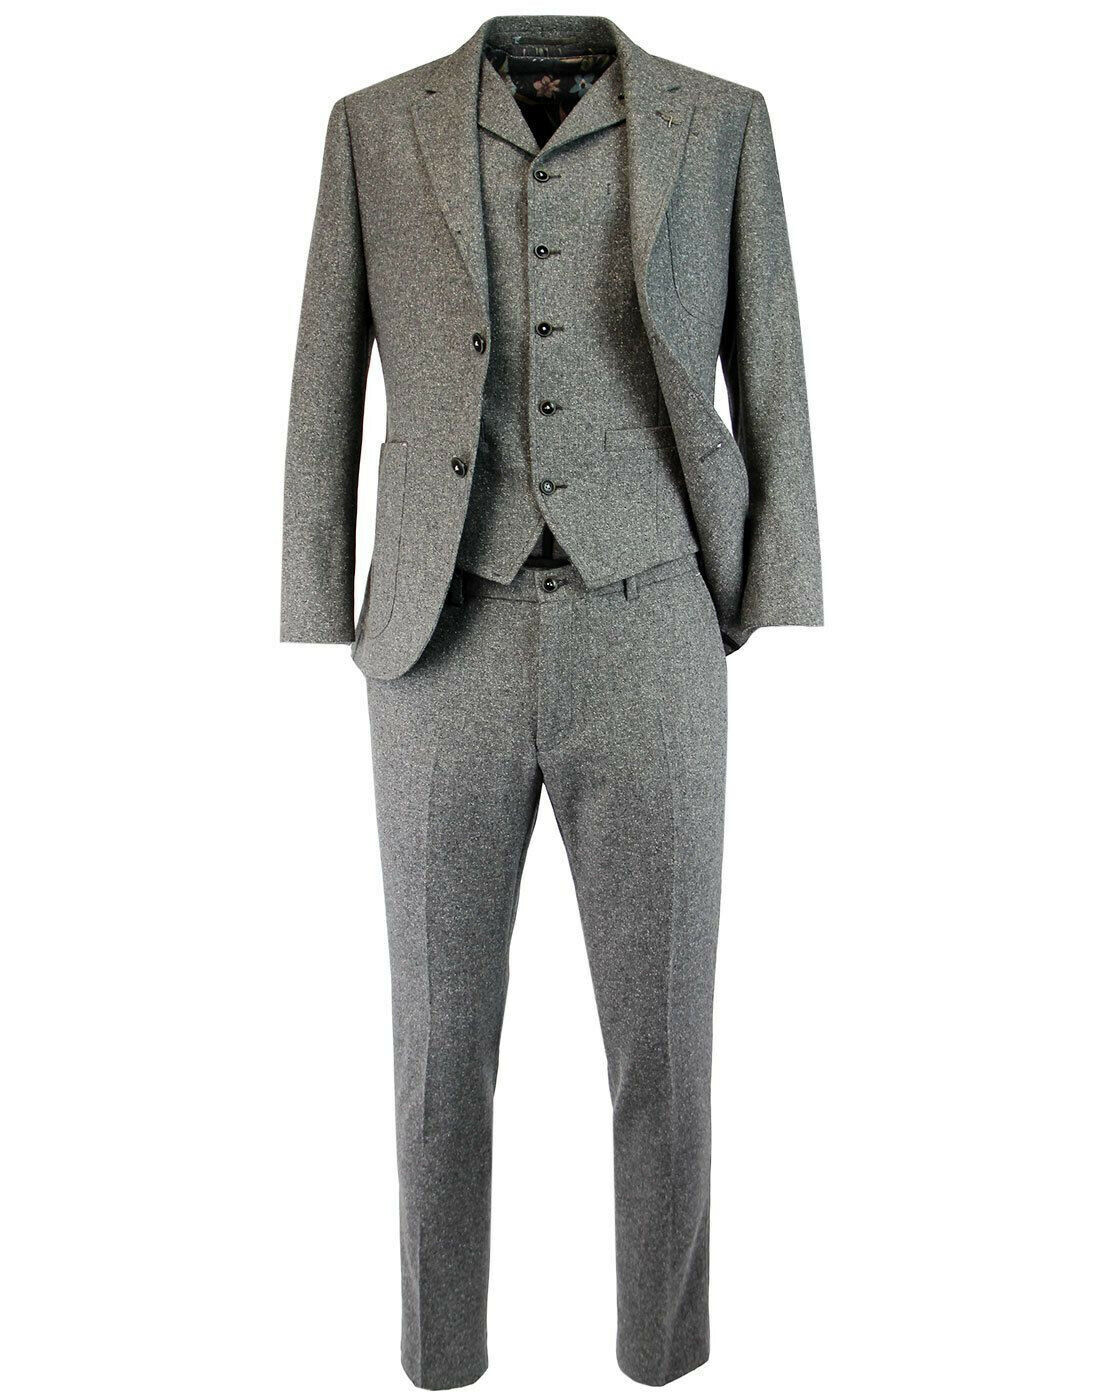 GIBSON LONDON 3 Piece Grey Donegal Suit tweed 40R